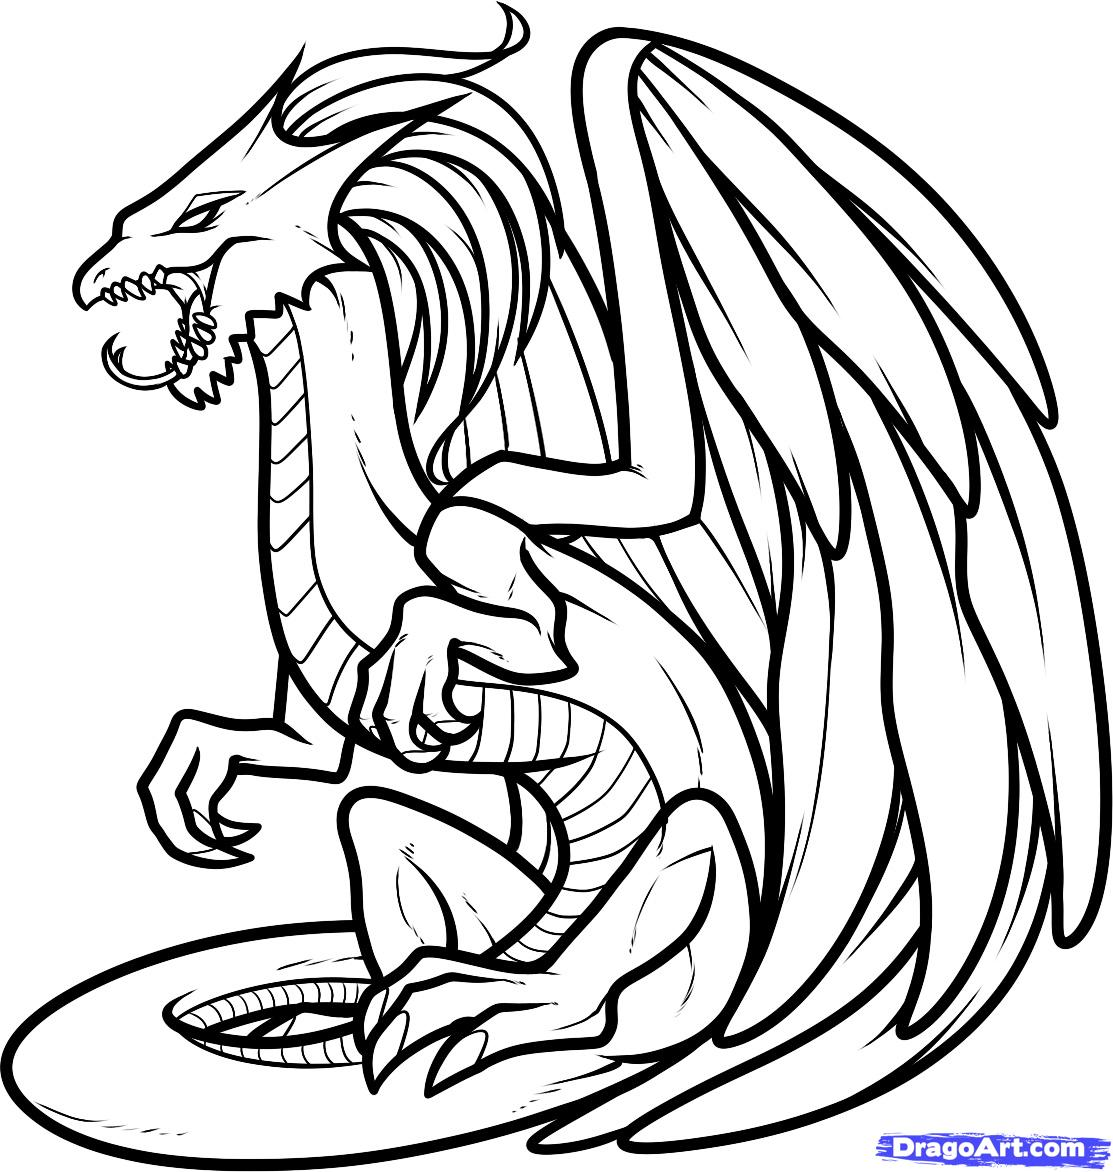 Flying Dragon Coloring Pages | Free download on ClipArtMag